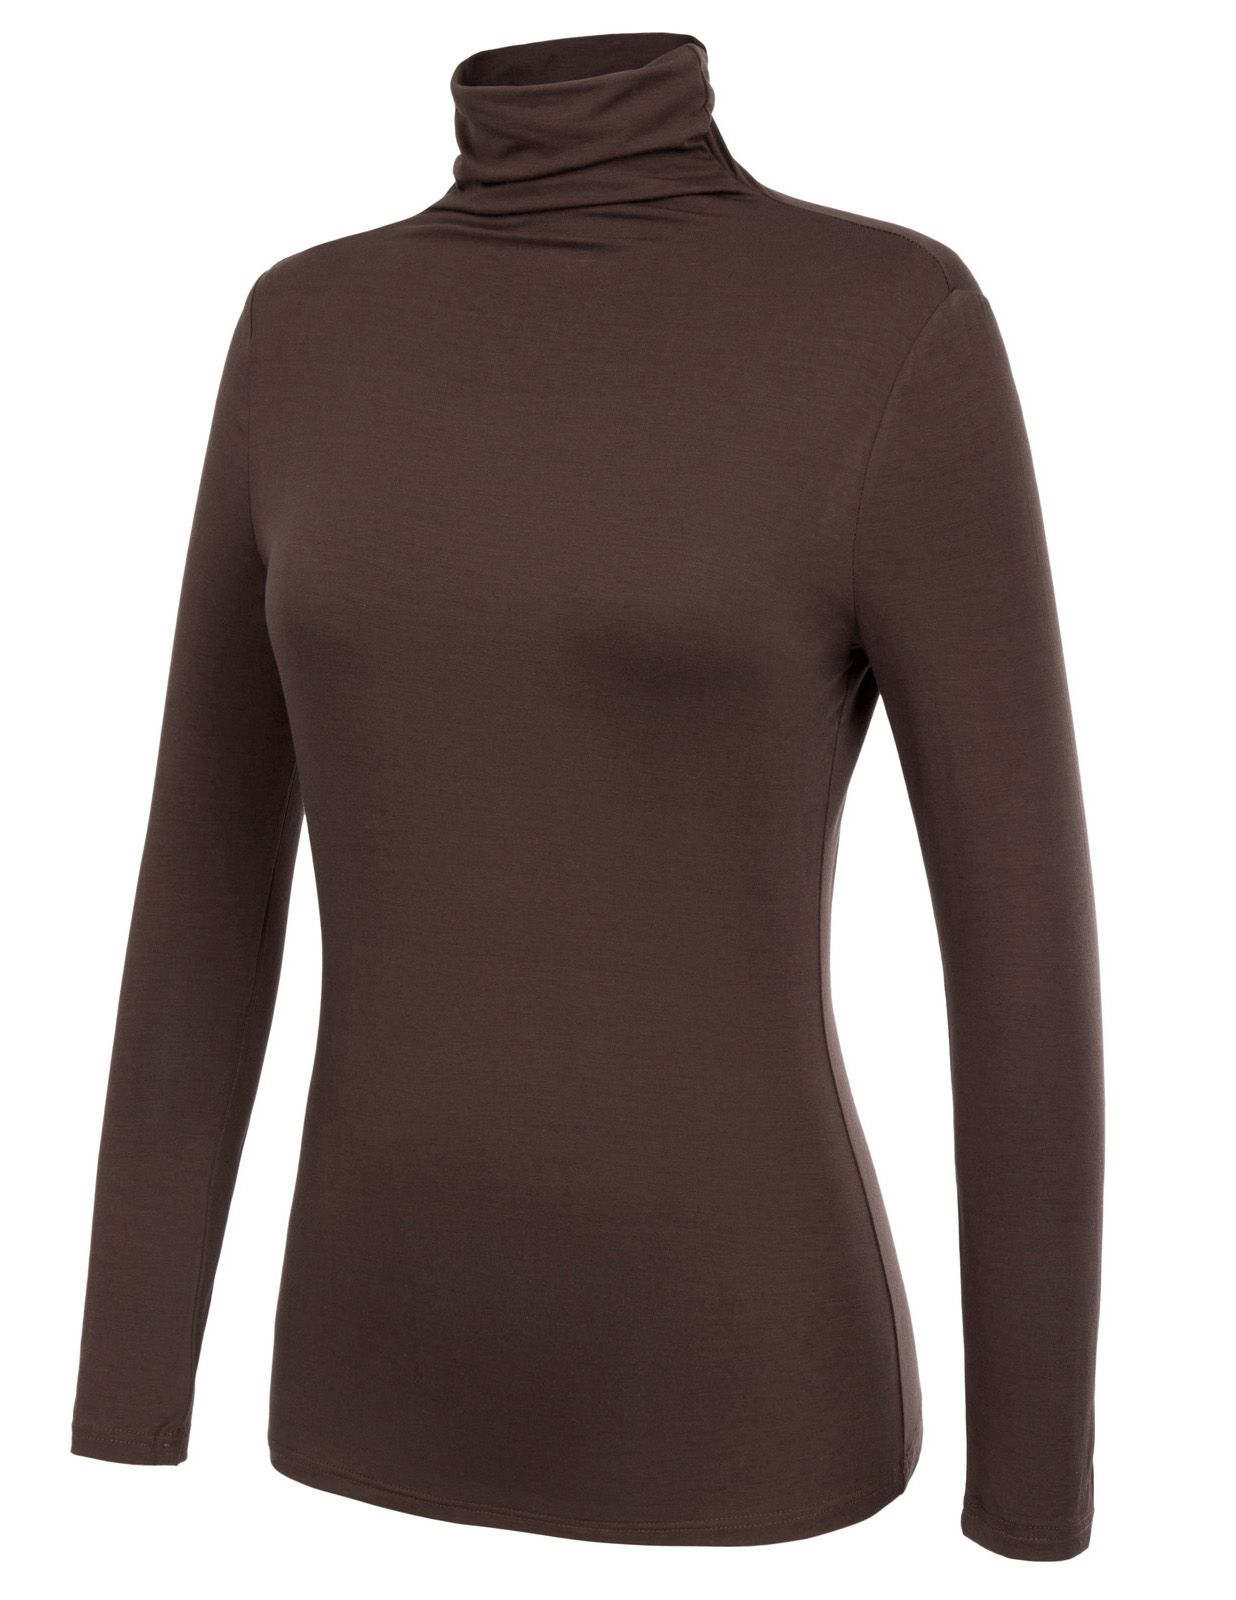 Tops Women 2018 Autumn and winter Comfortable Long Sleeve Turtleneck Pullover Cotton T-Shirt Tops Wild Solid color shirt